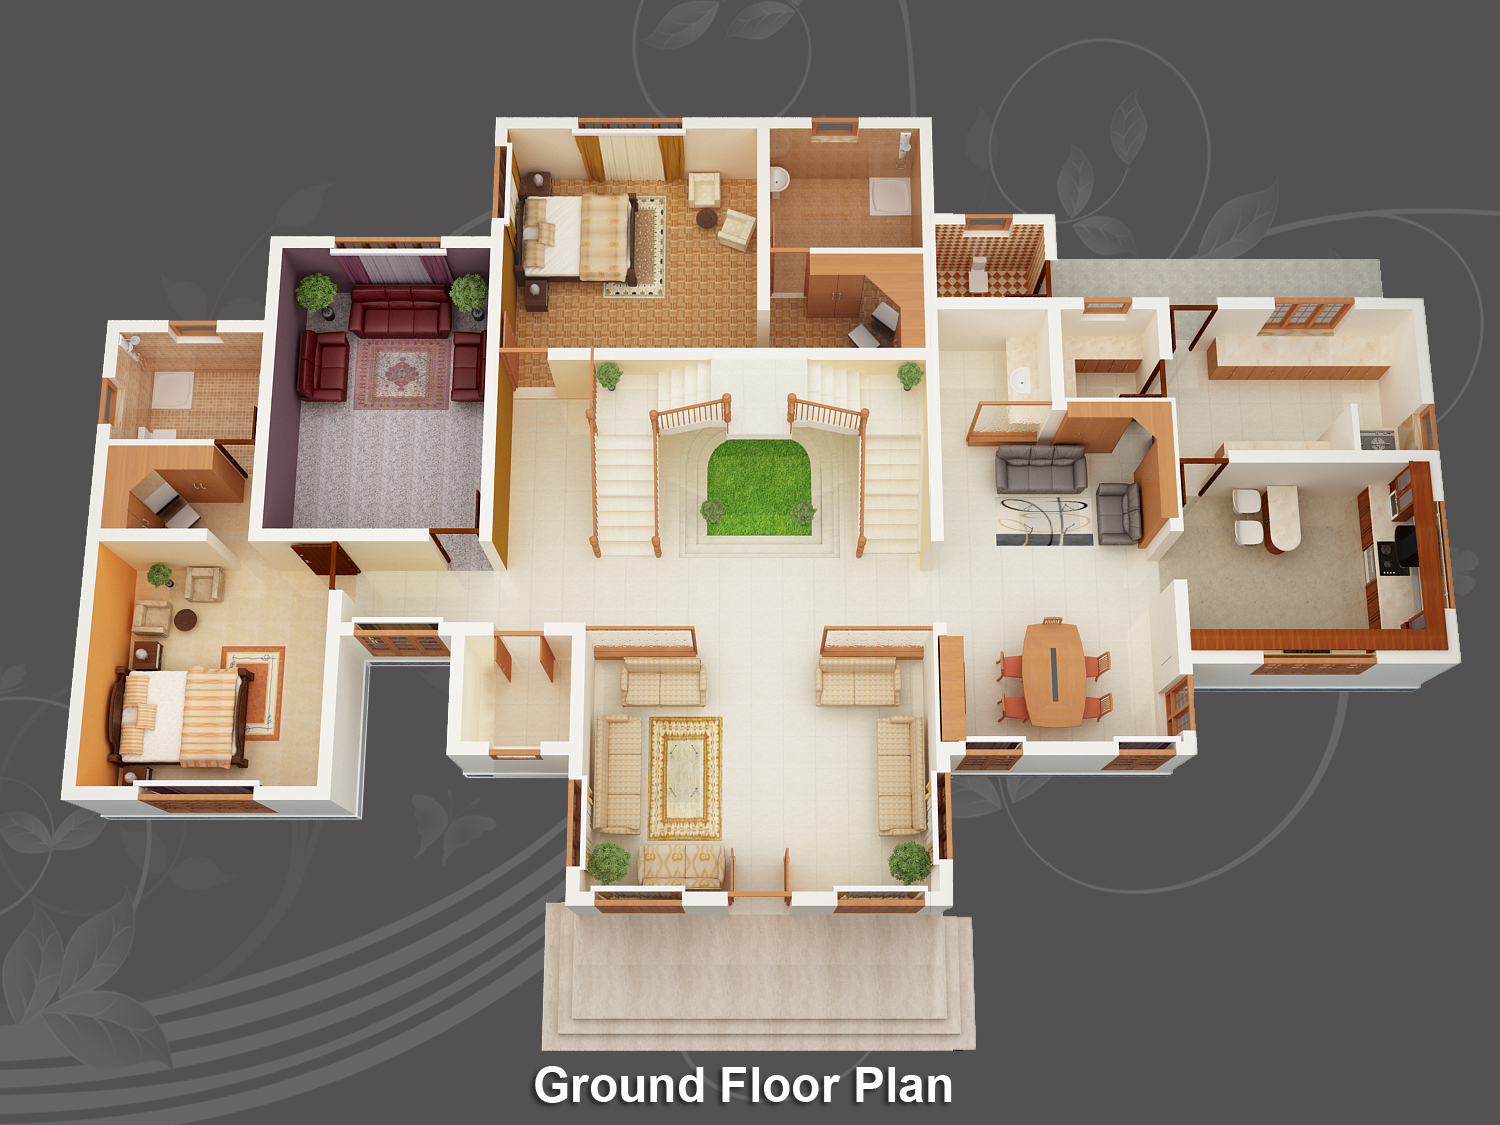 Evens construction pvt ltd may 2011 for Build house online 3d free